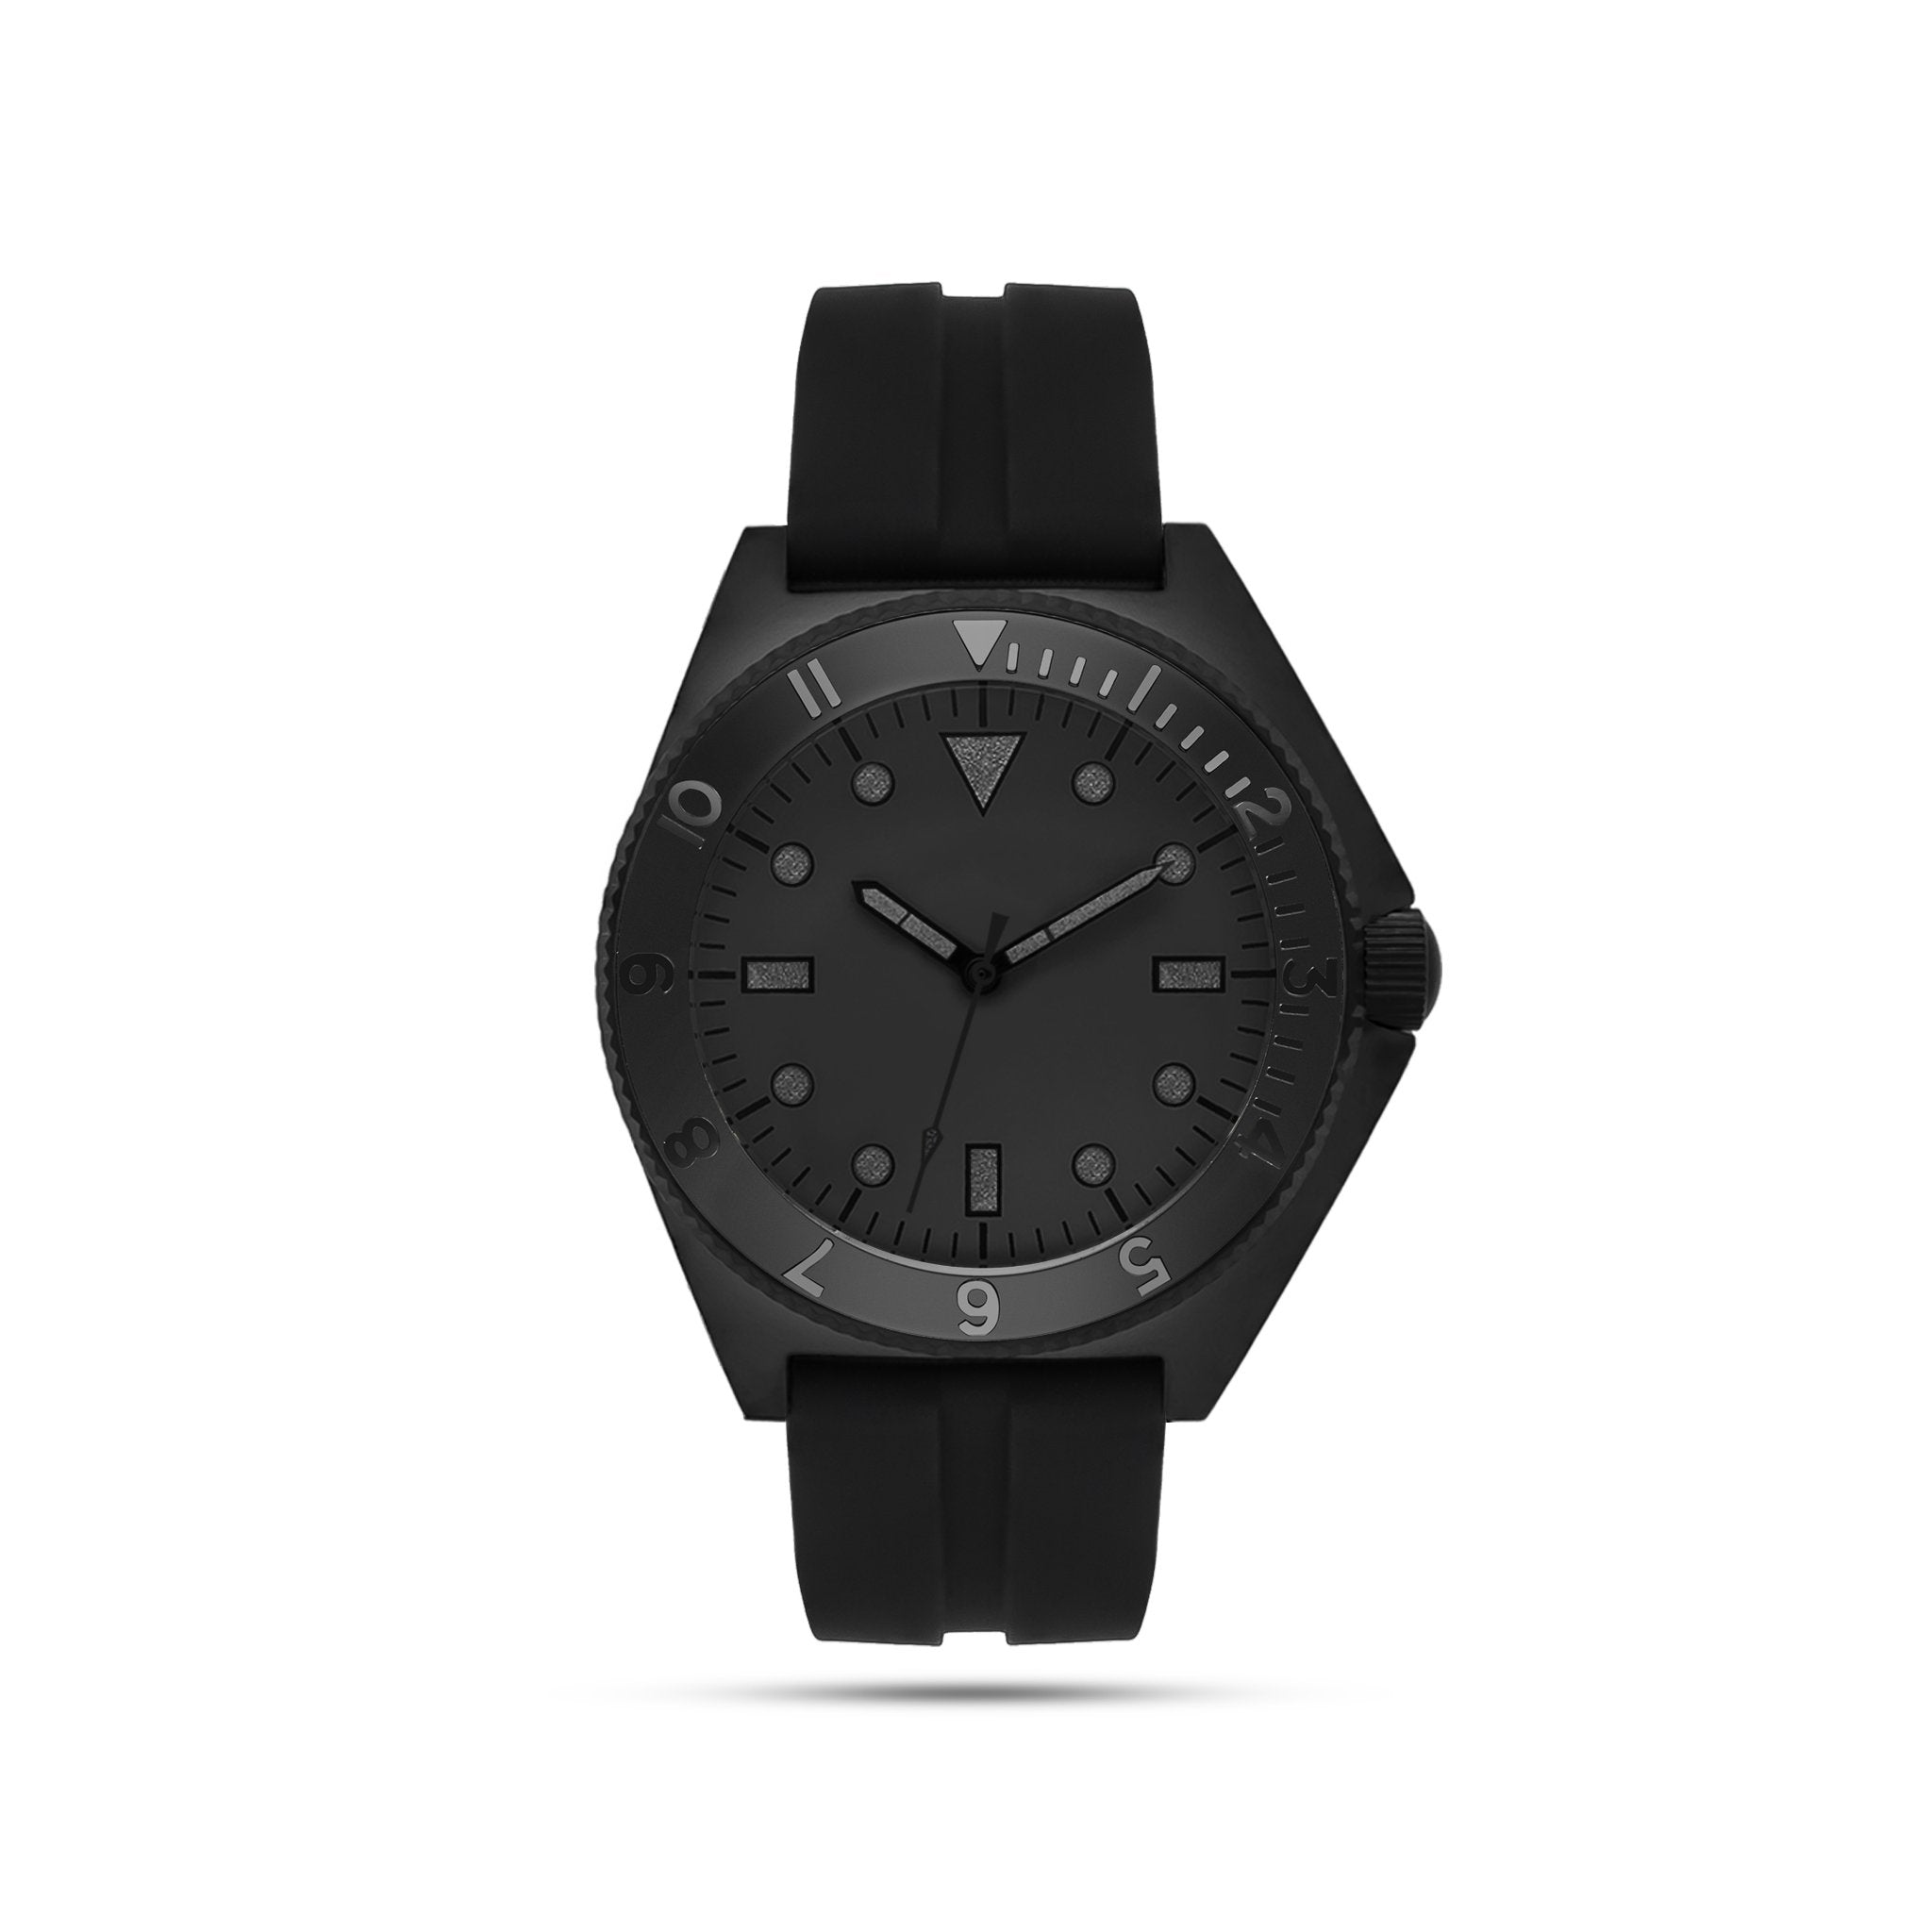 black mens watch with black face and accents